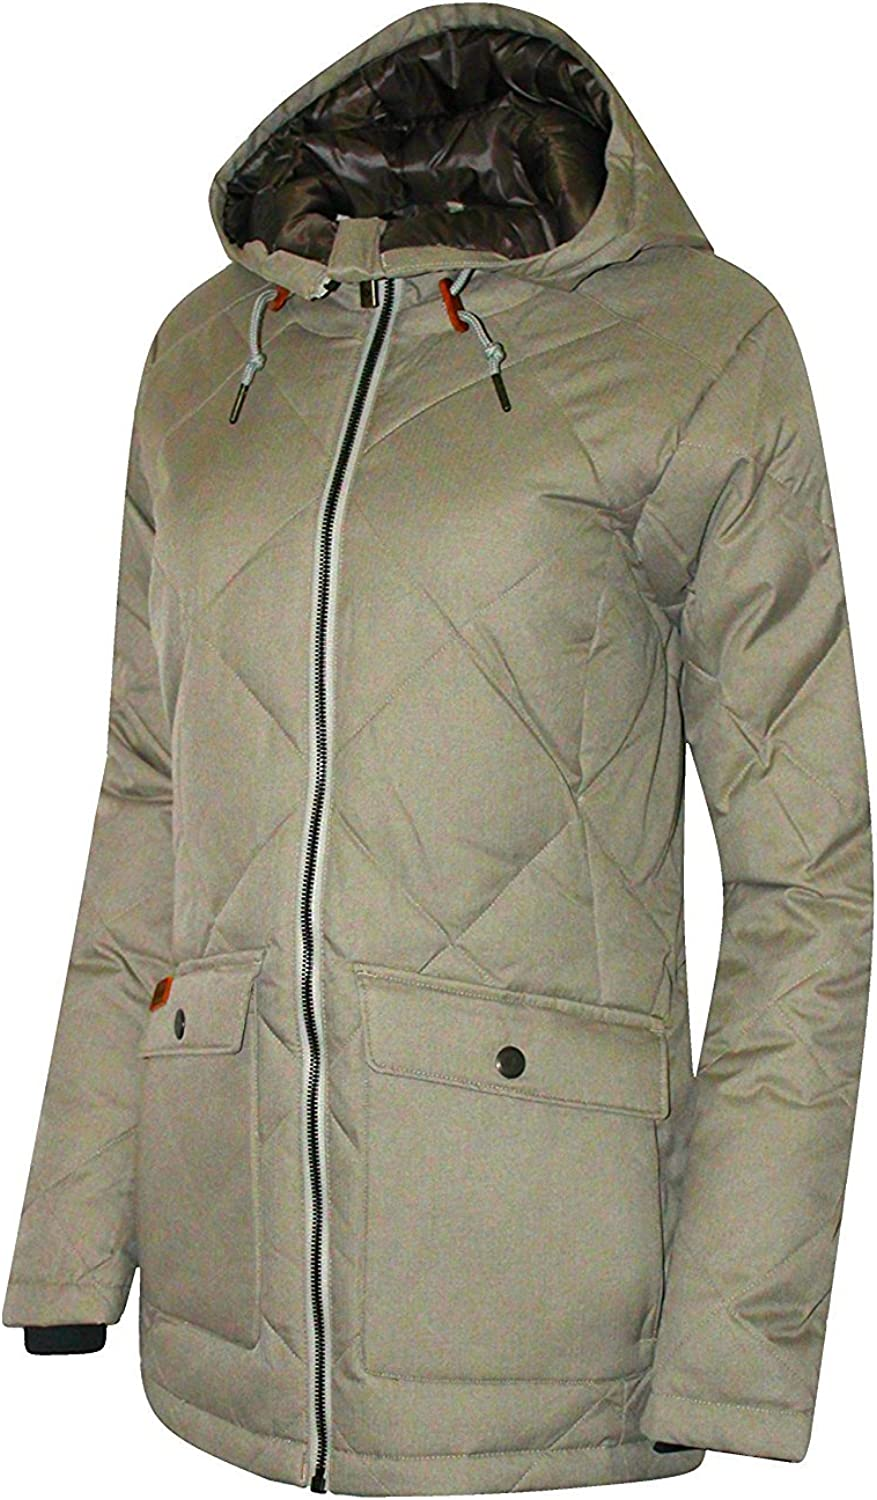 Columbia Women's Crescent Cliff Down Hooded Insulated Jacket Parka (L, DARK GREY)